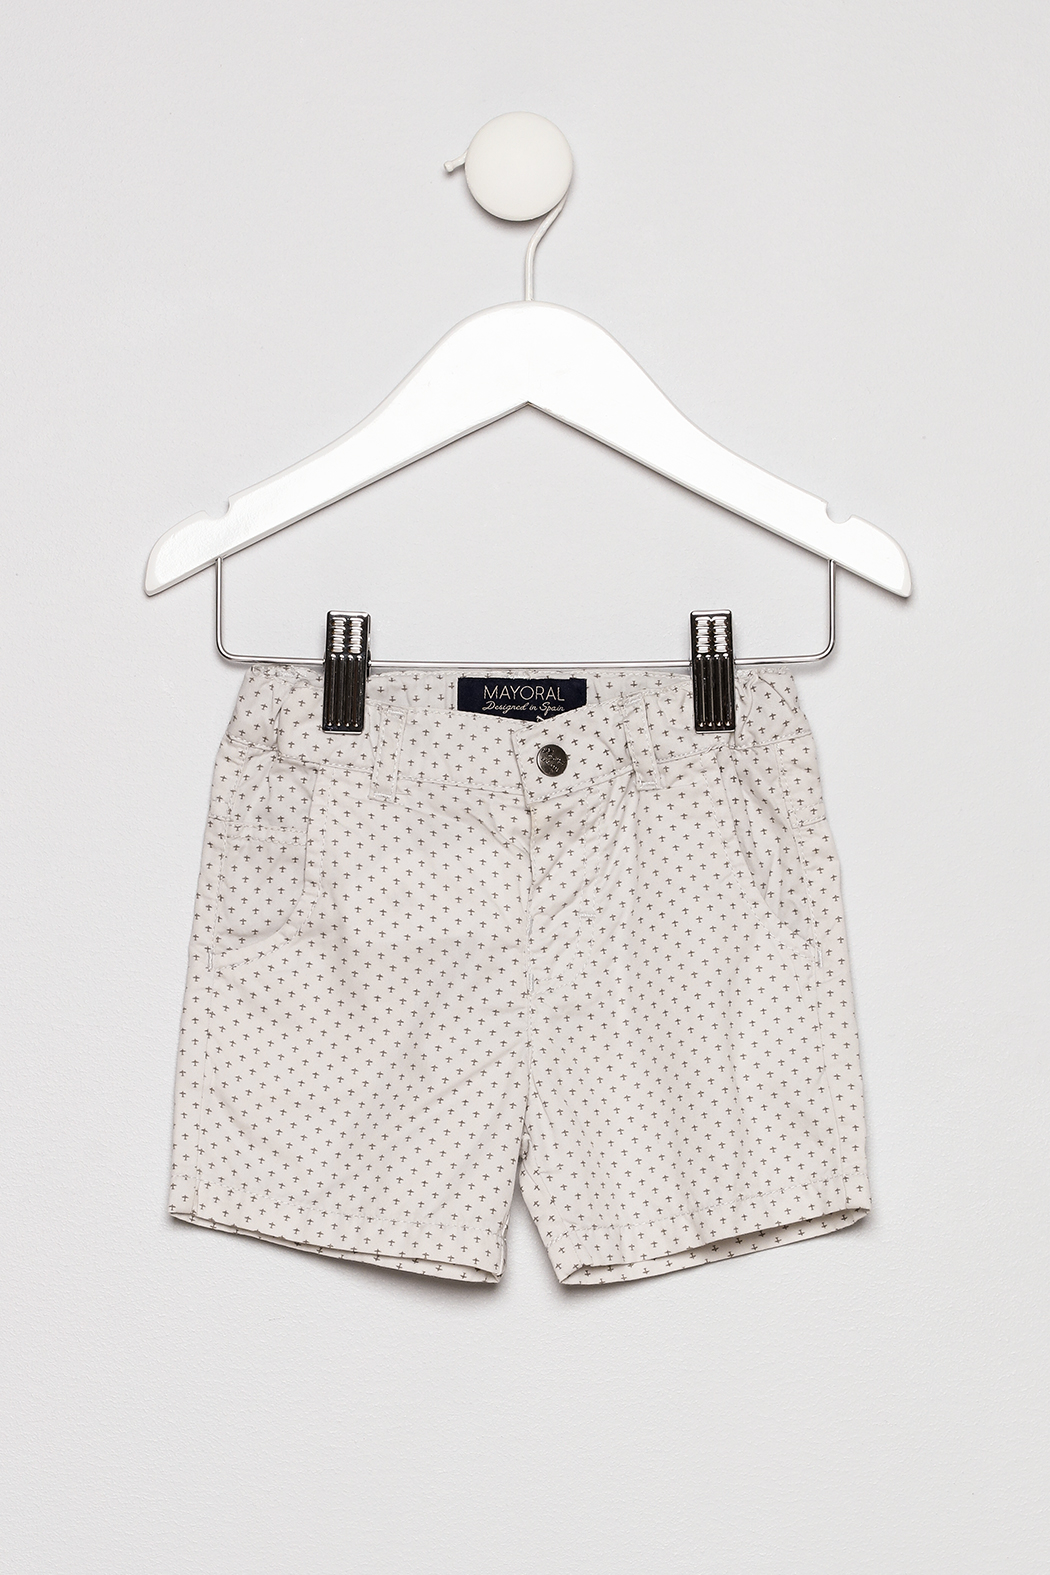 Mayoral Collar Shirt with Khaki Shorts Outfit - Main Image